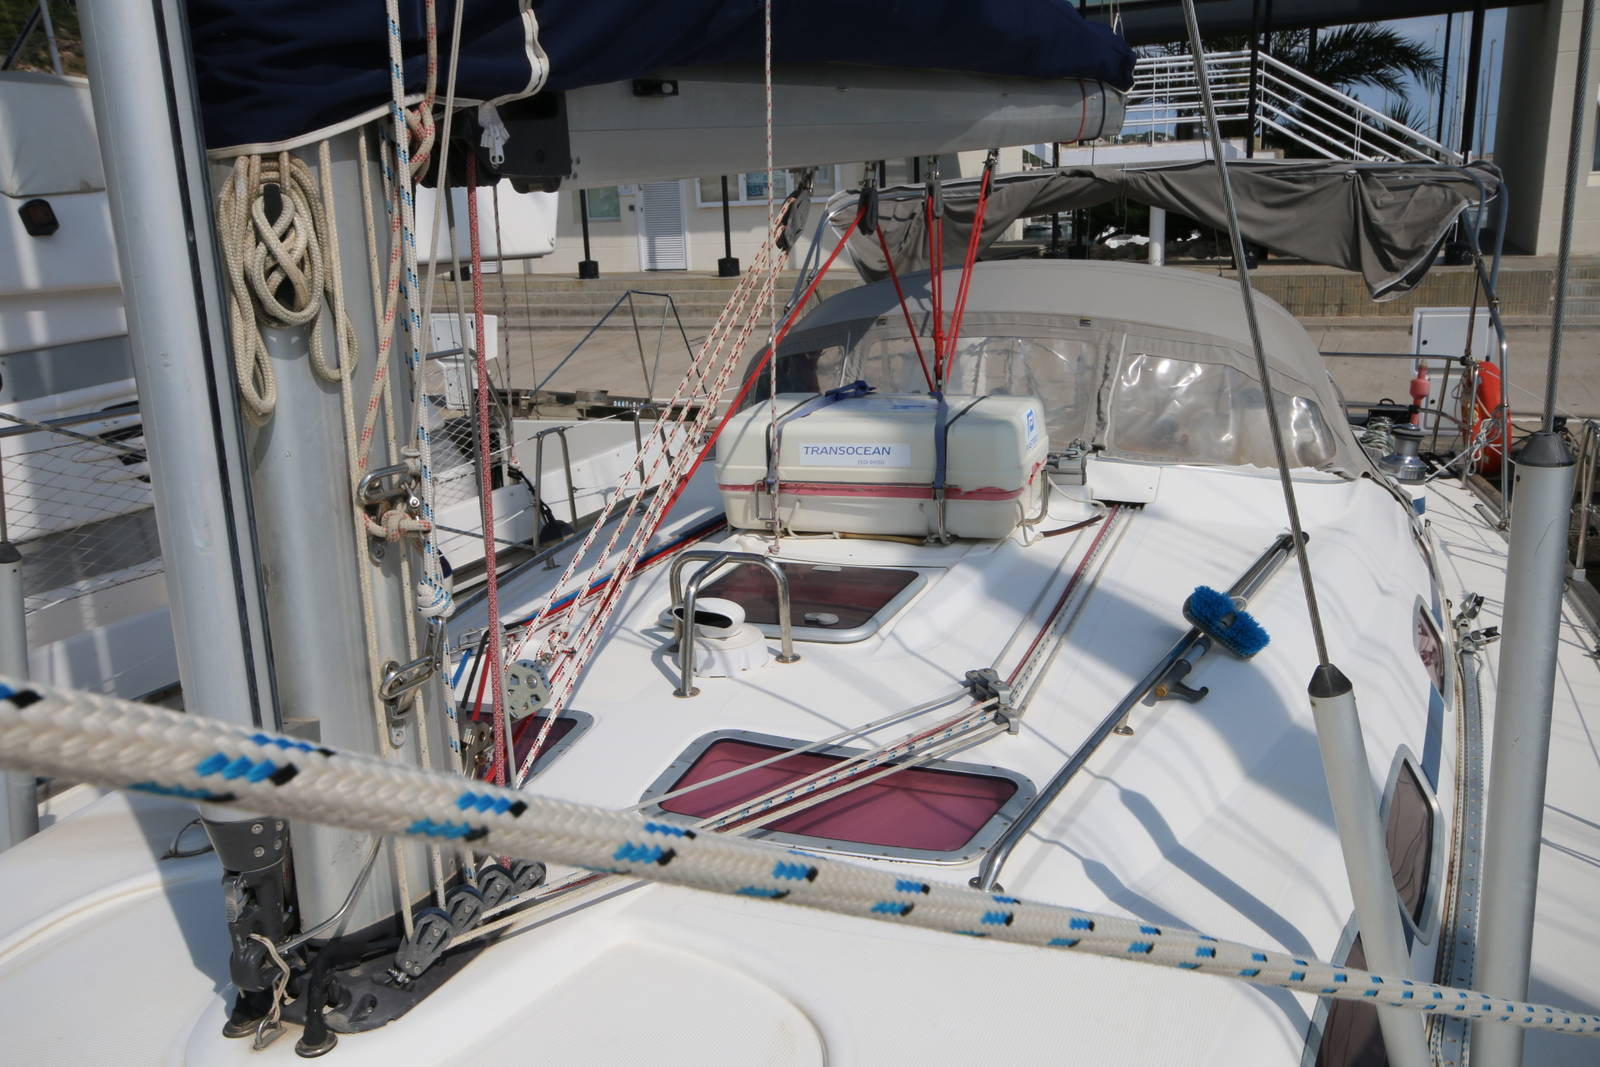 Bavaria 46 Yacht Deck on Boat 3